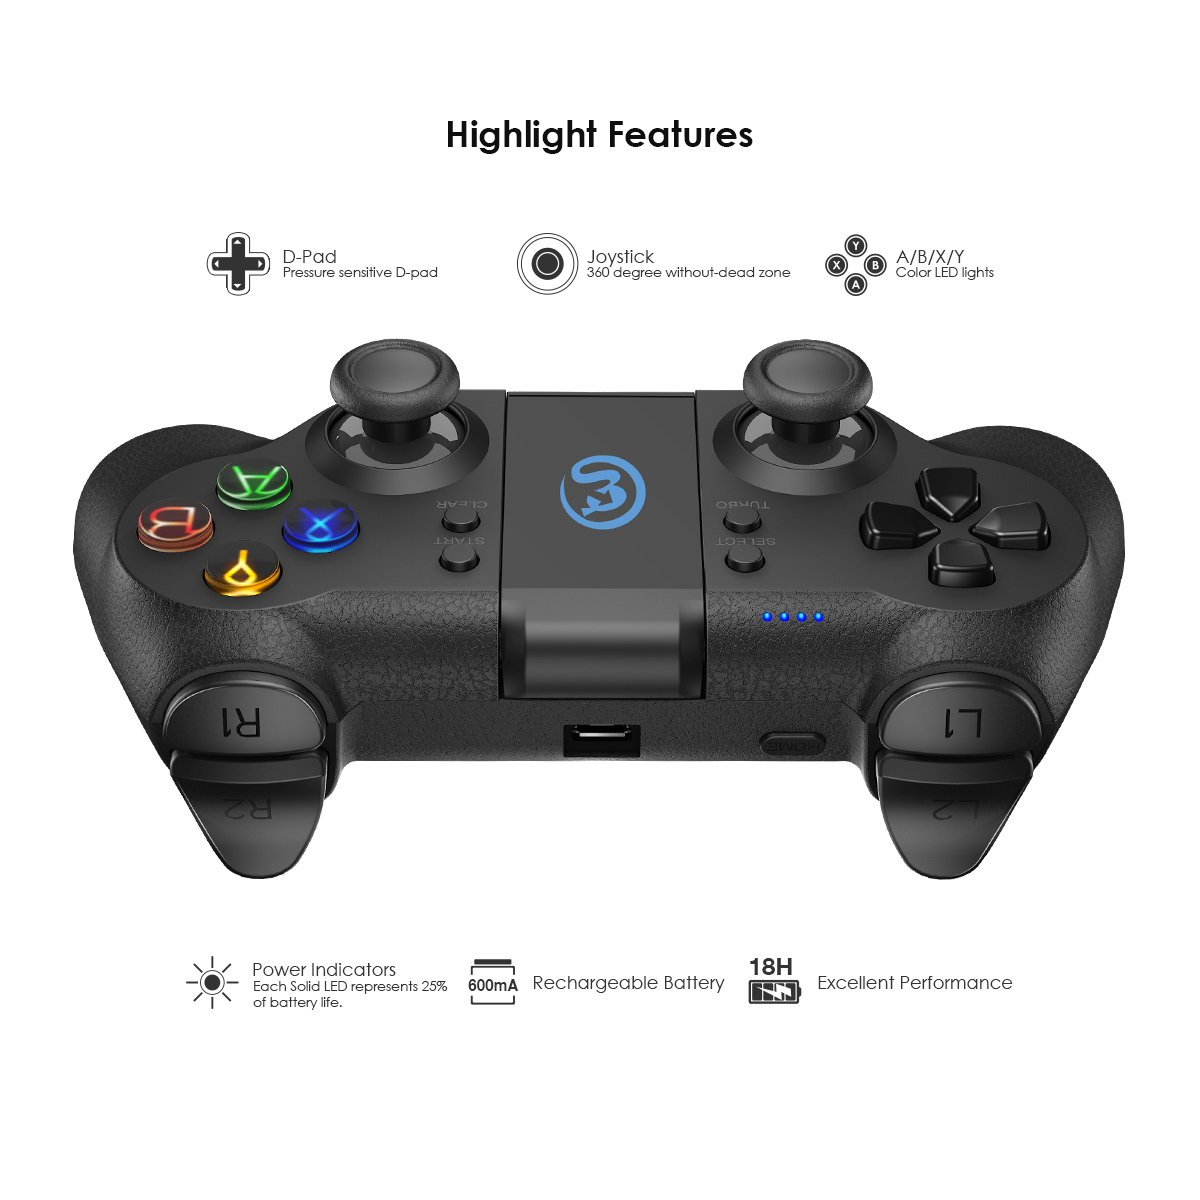 Gamesir T1 Wireless Bluetooth Game Controller For Gamepad Usb Interface Circuit Using Psx Or N64 Android Wired Pc Gaming Smart Tv Box Ps3 Samsung Gear